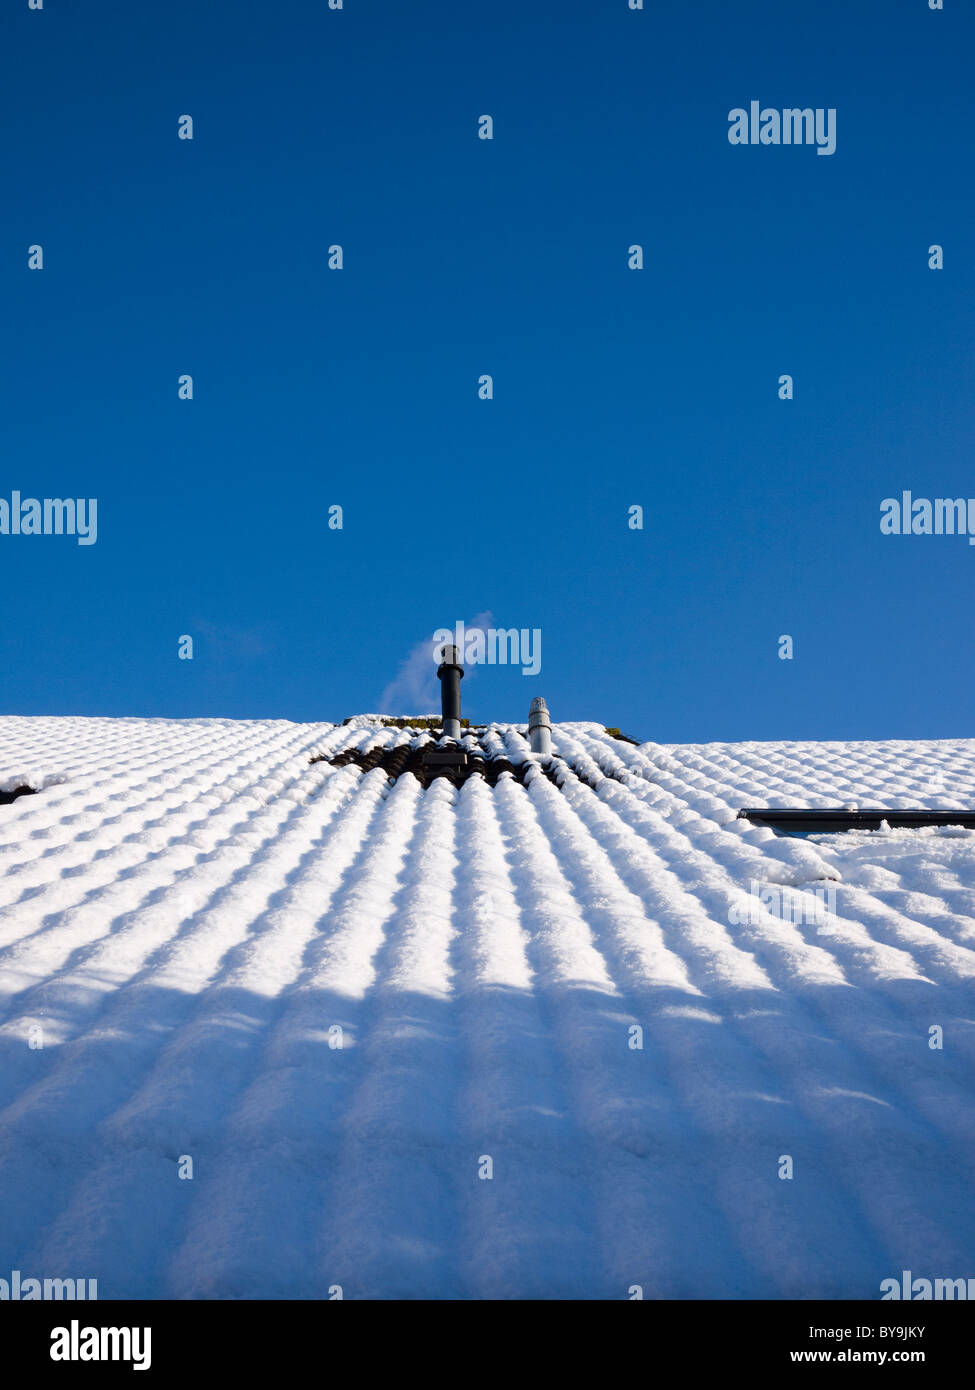 A domestic combination boiler flue on a rooftop emitting steam on a snow covered roof against a clear blue sky. - Stock Image